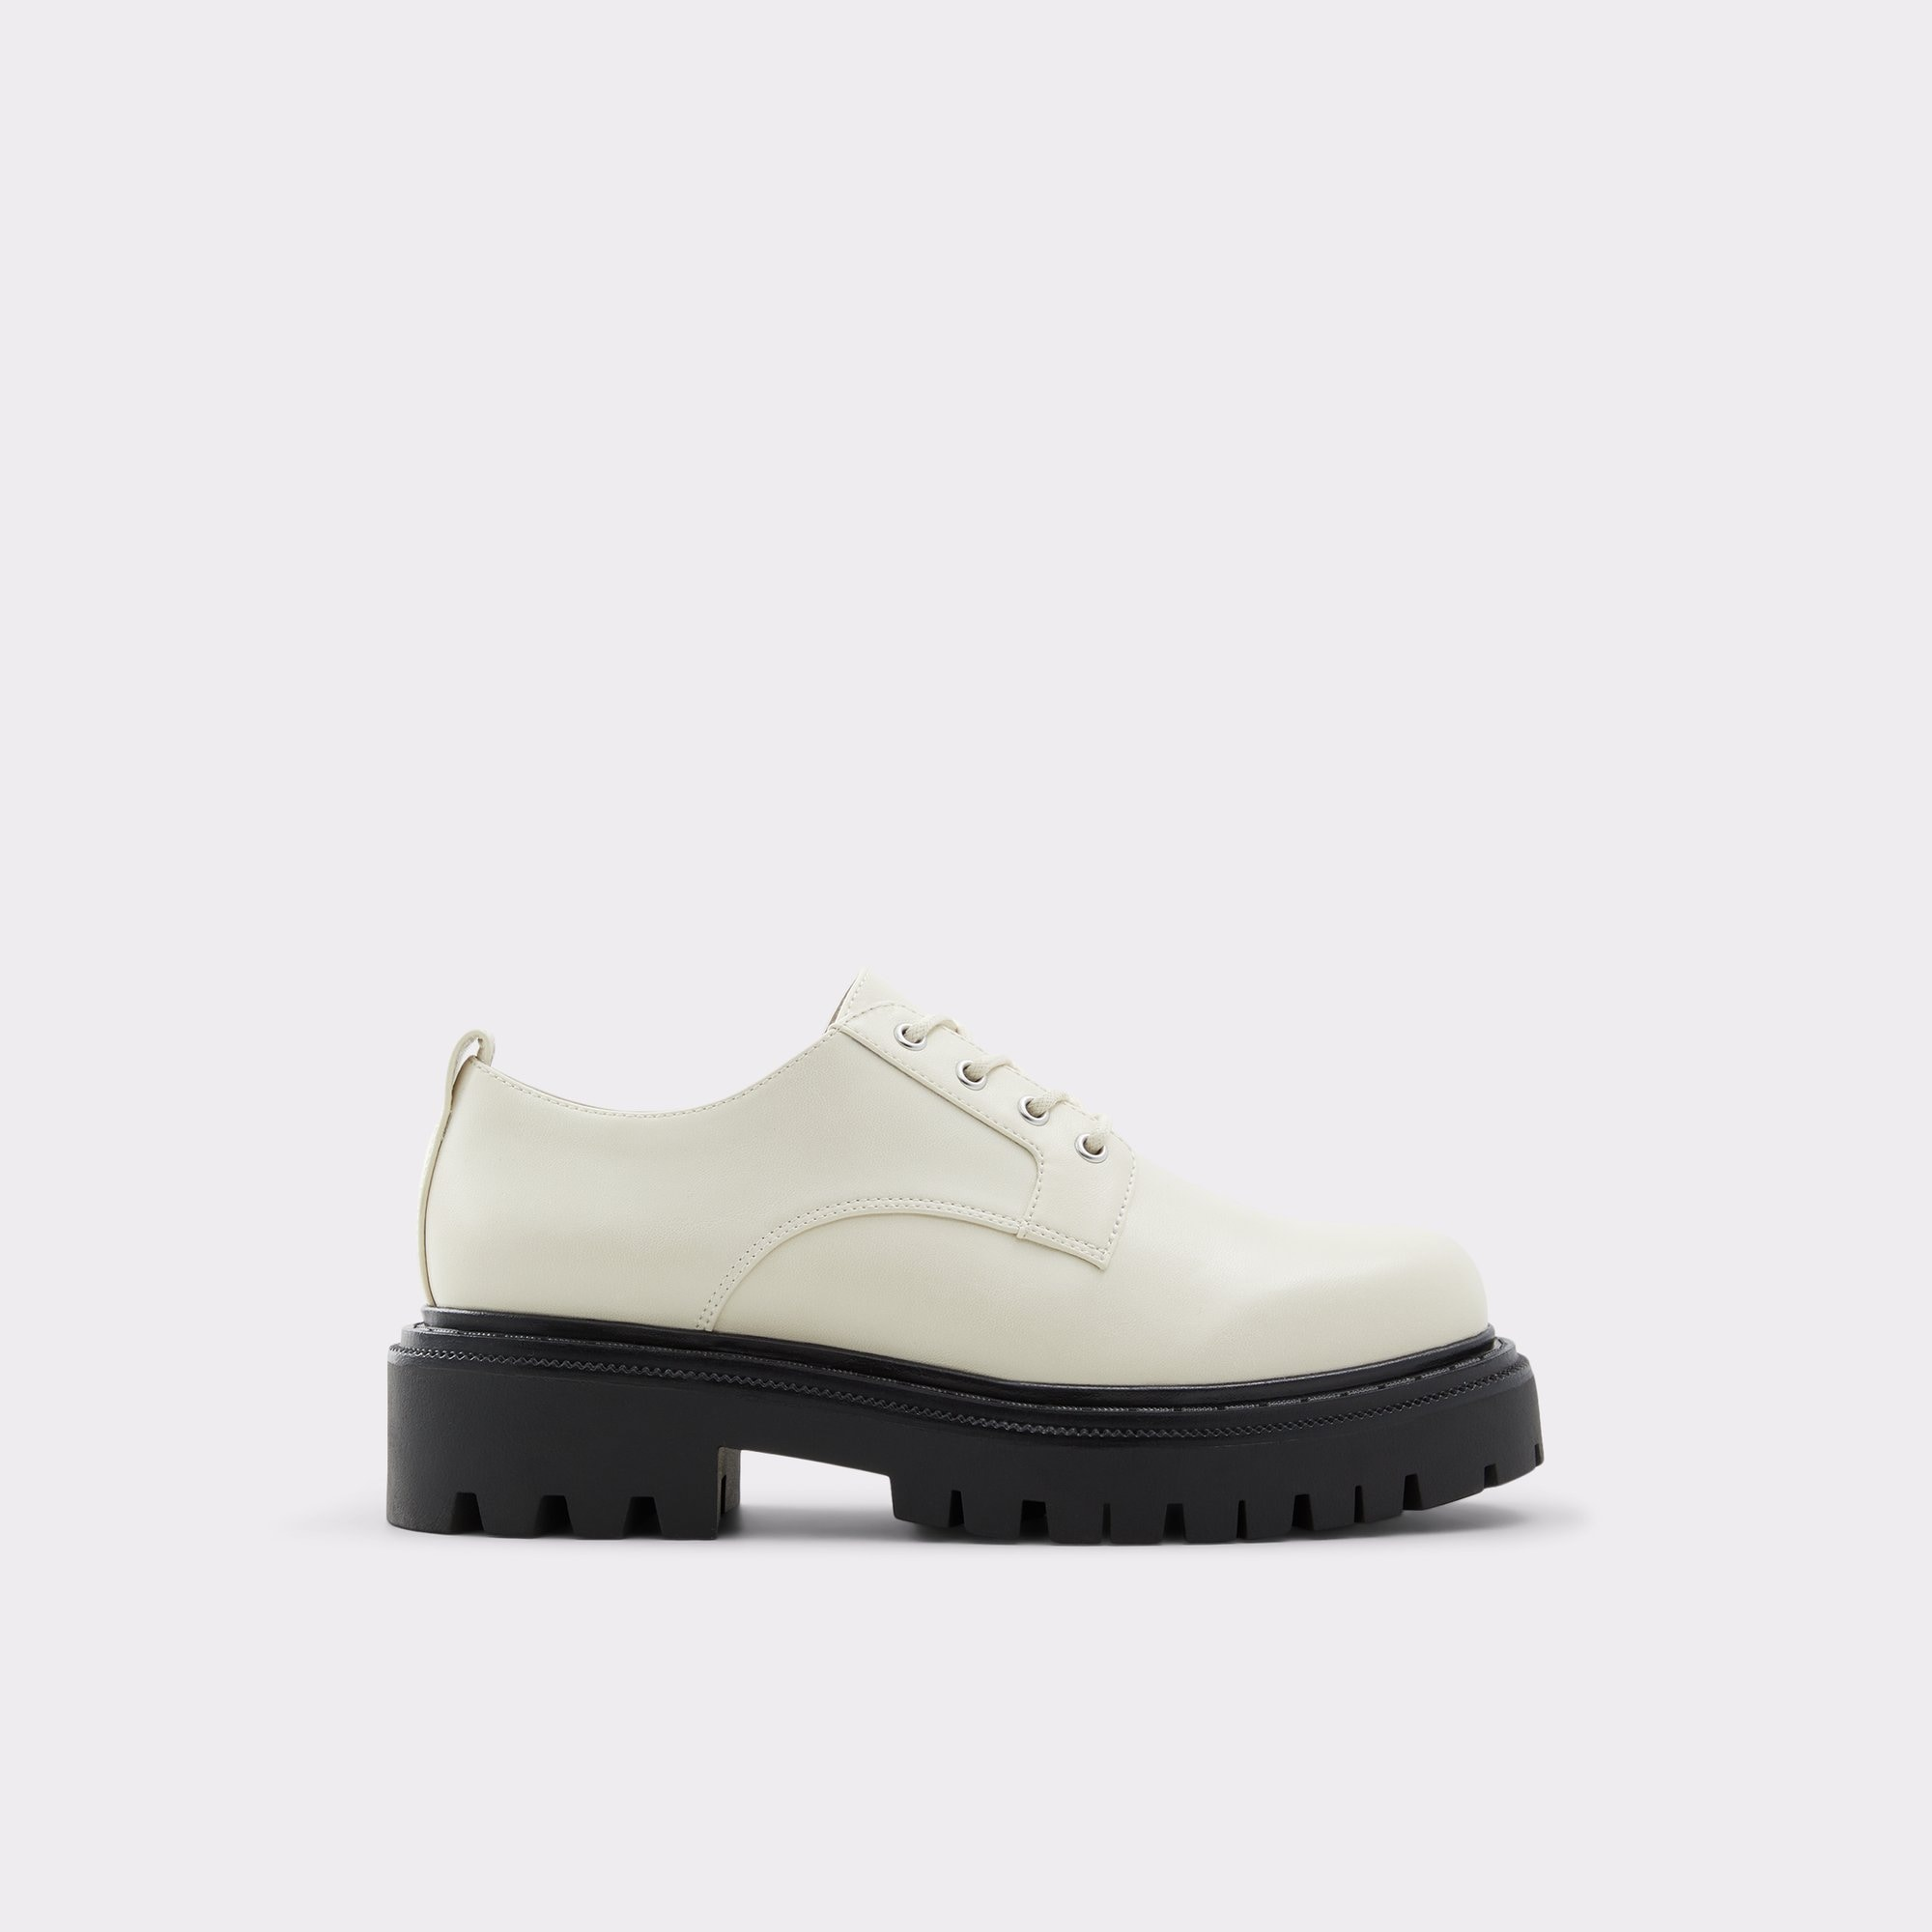 Bigmove by ALDO, available on aldoshoes.com for $80 Gigi Hadid Shoes Exact Product